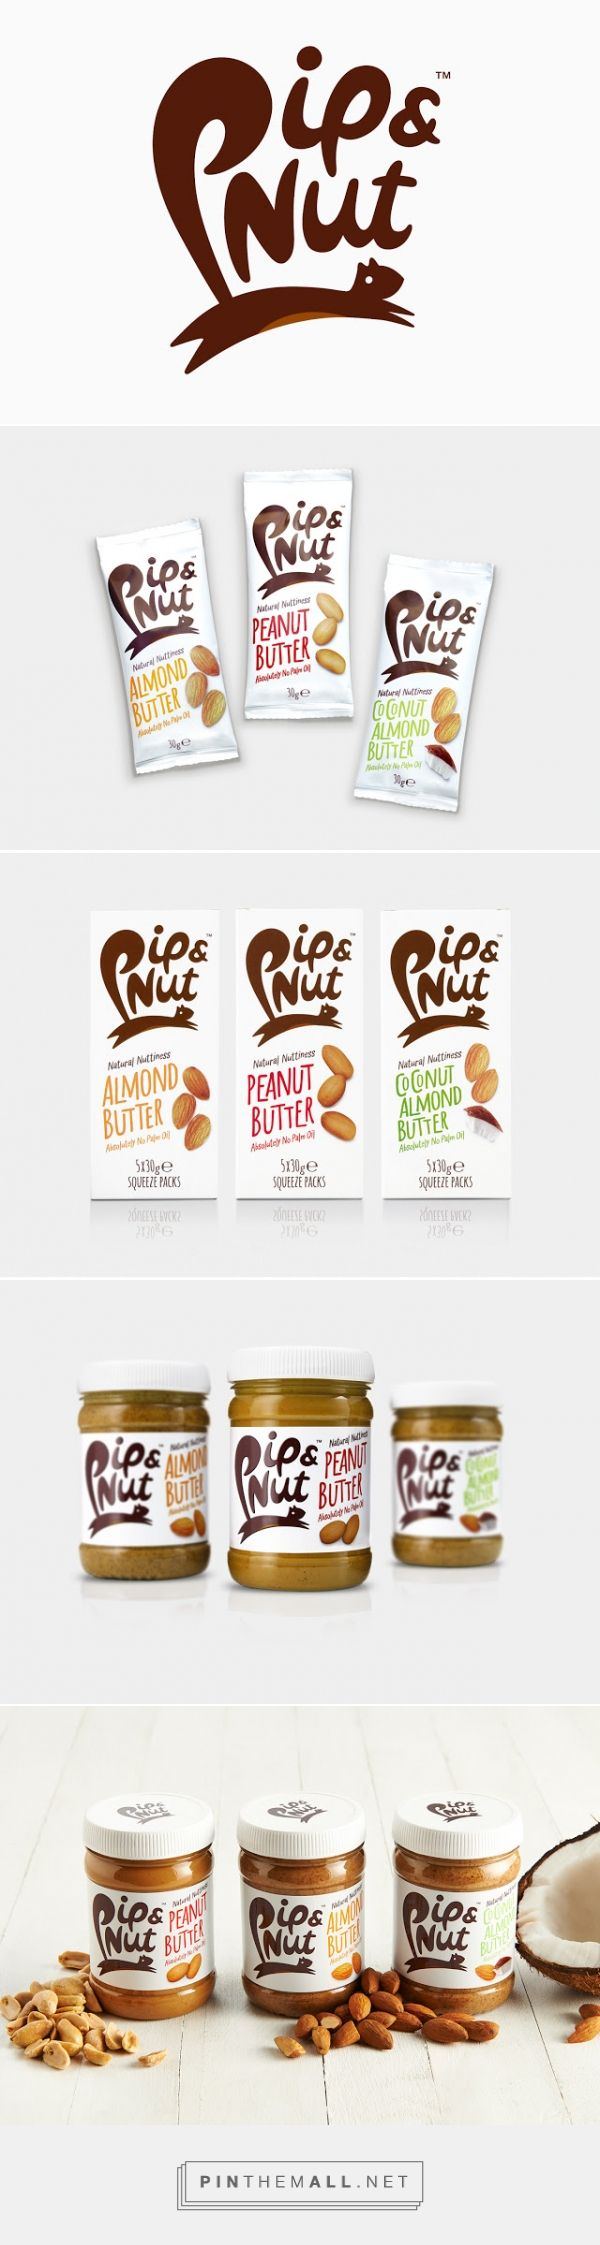 It's been bunnies all day long, let us look at some squirrels for a change -  http://www.packagingoftheworld.com/2015/04/pip-nut.html